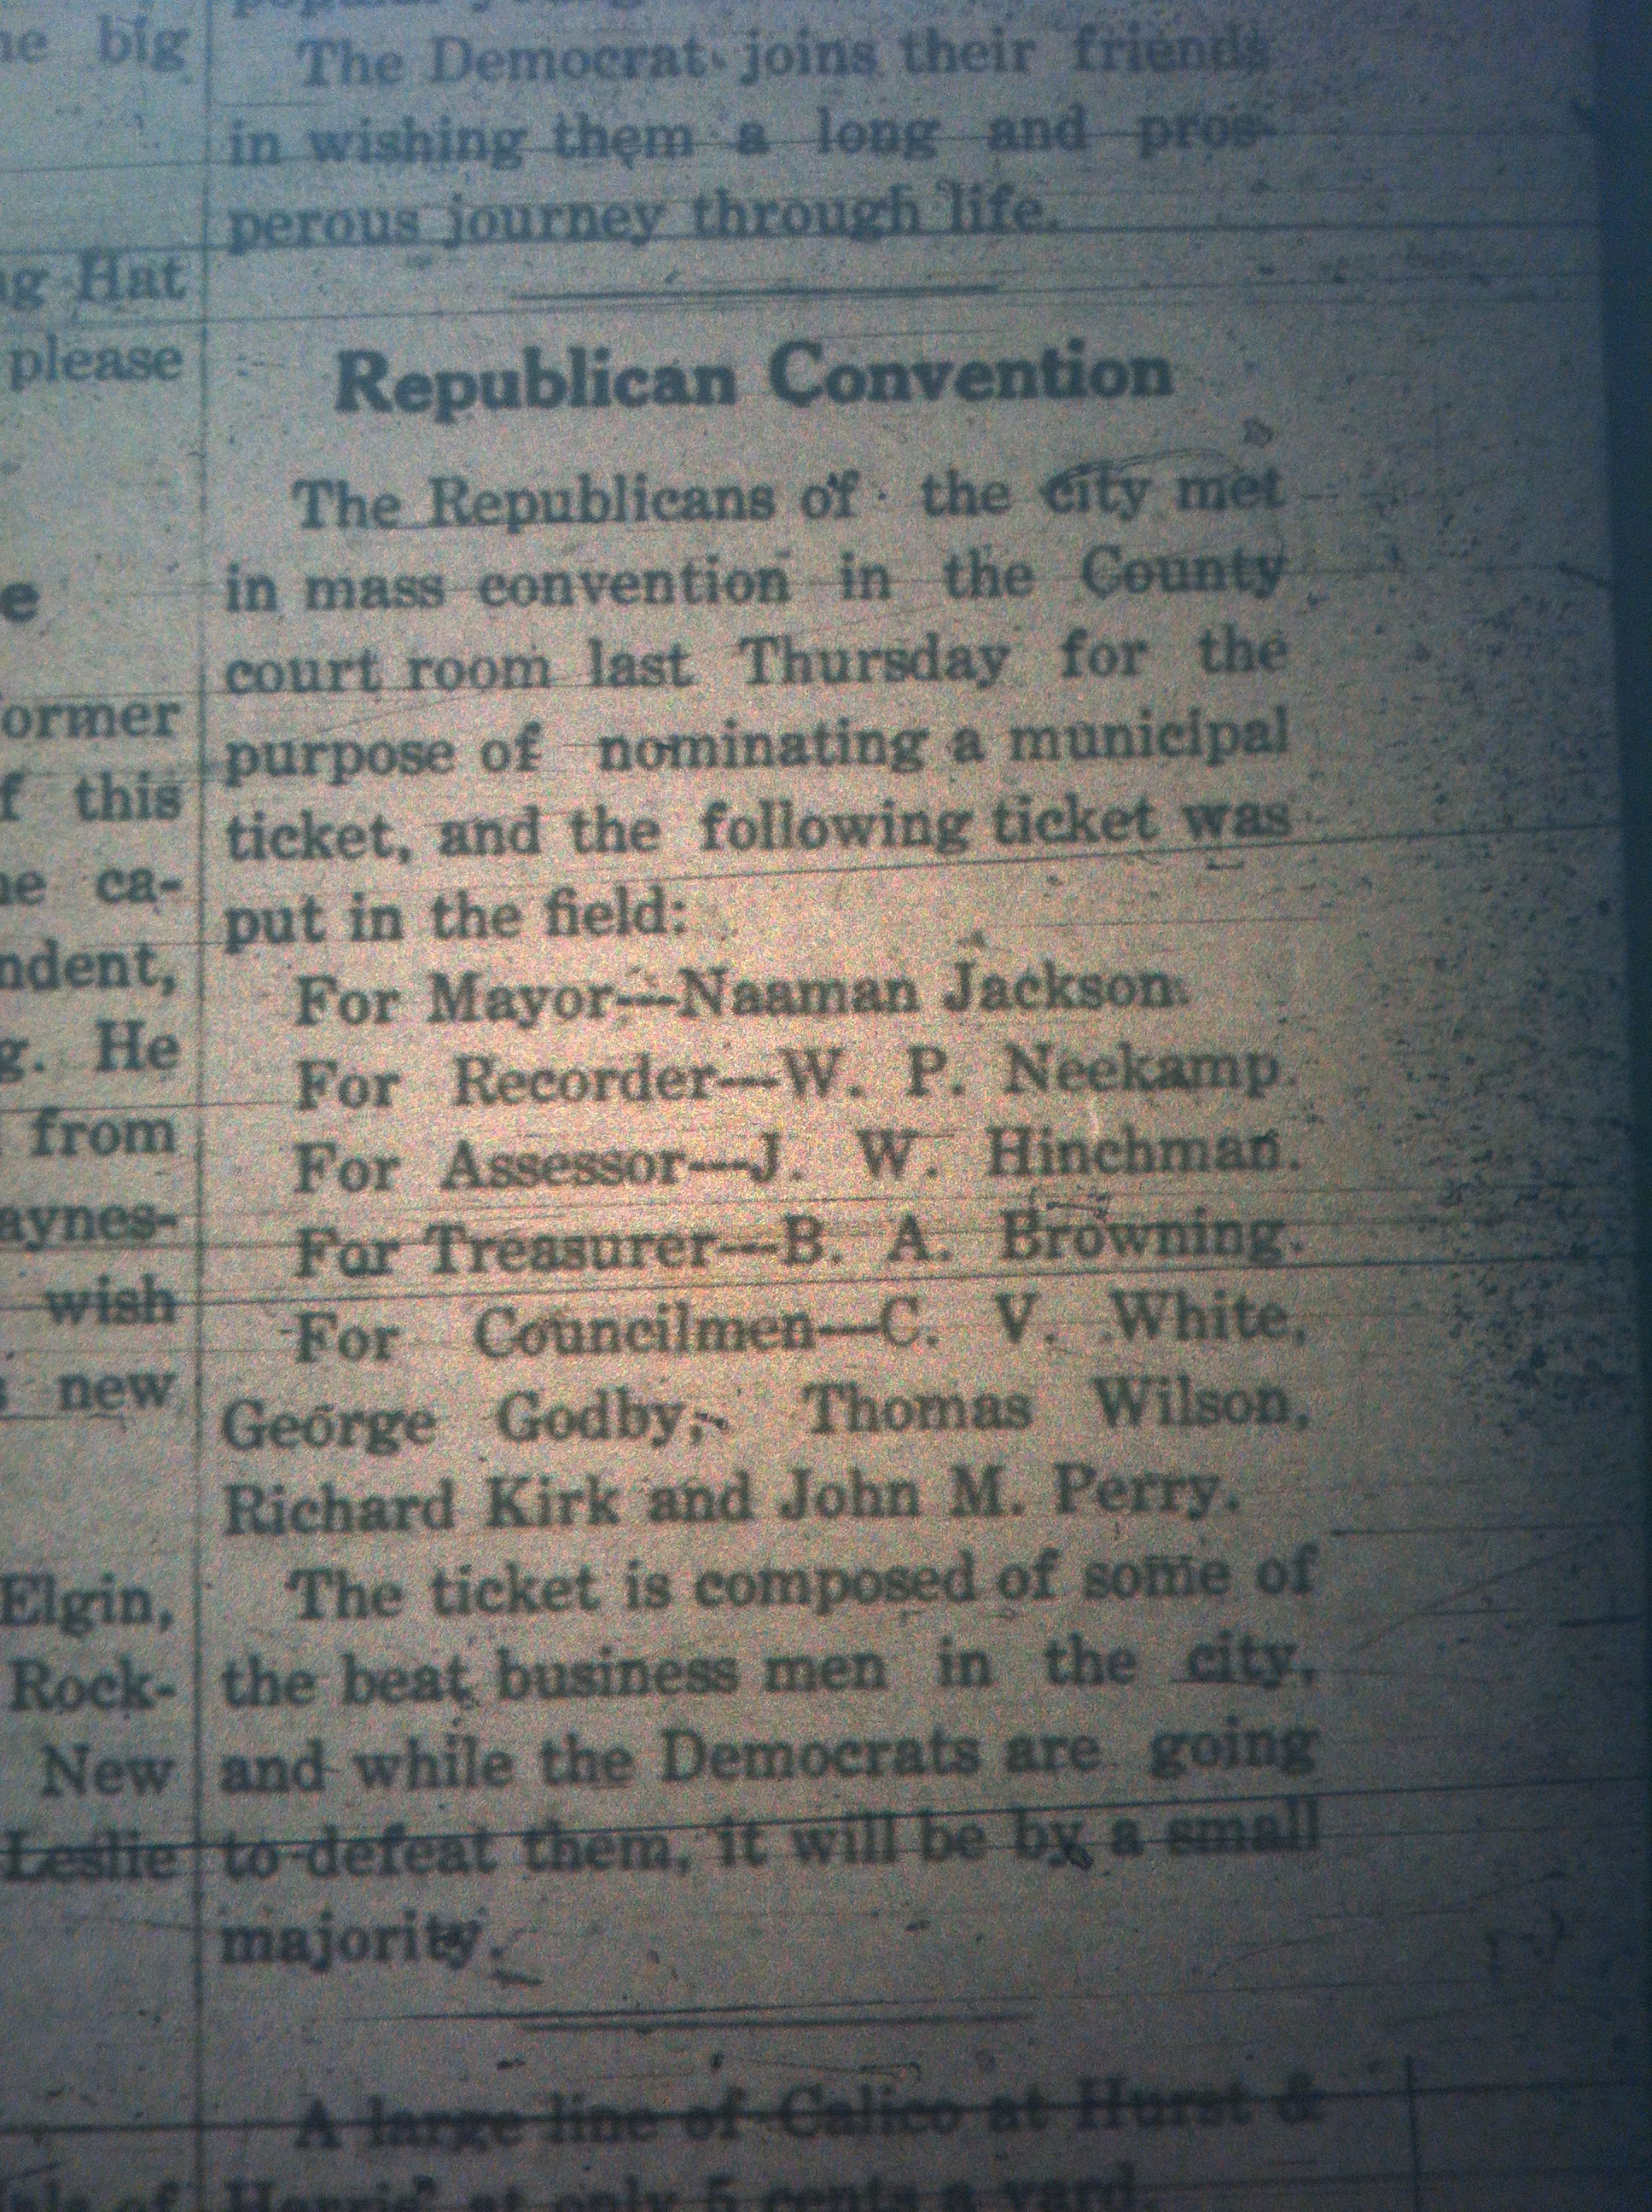 Logan Republican Municipal Ticket LD 03.30.1911 1.JPG